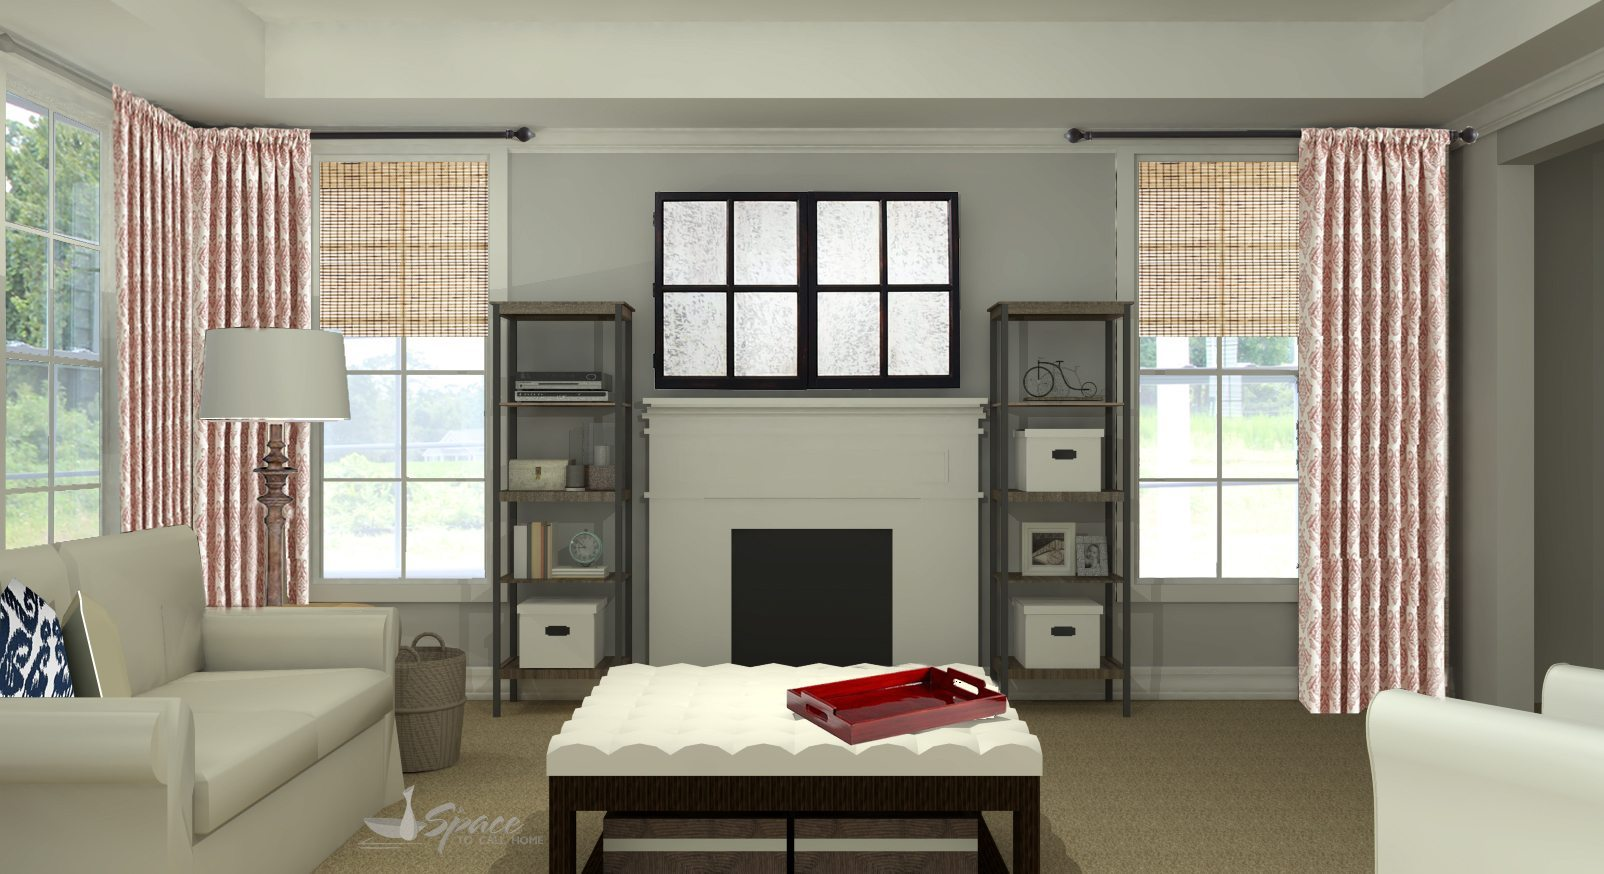 Virtual Room Design - Create Your Dream Room - A Space to Call Home